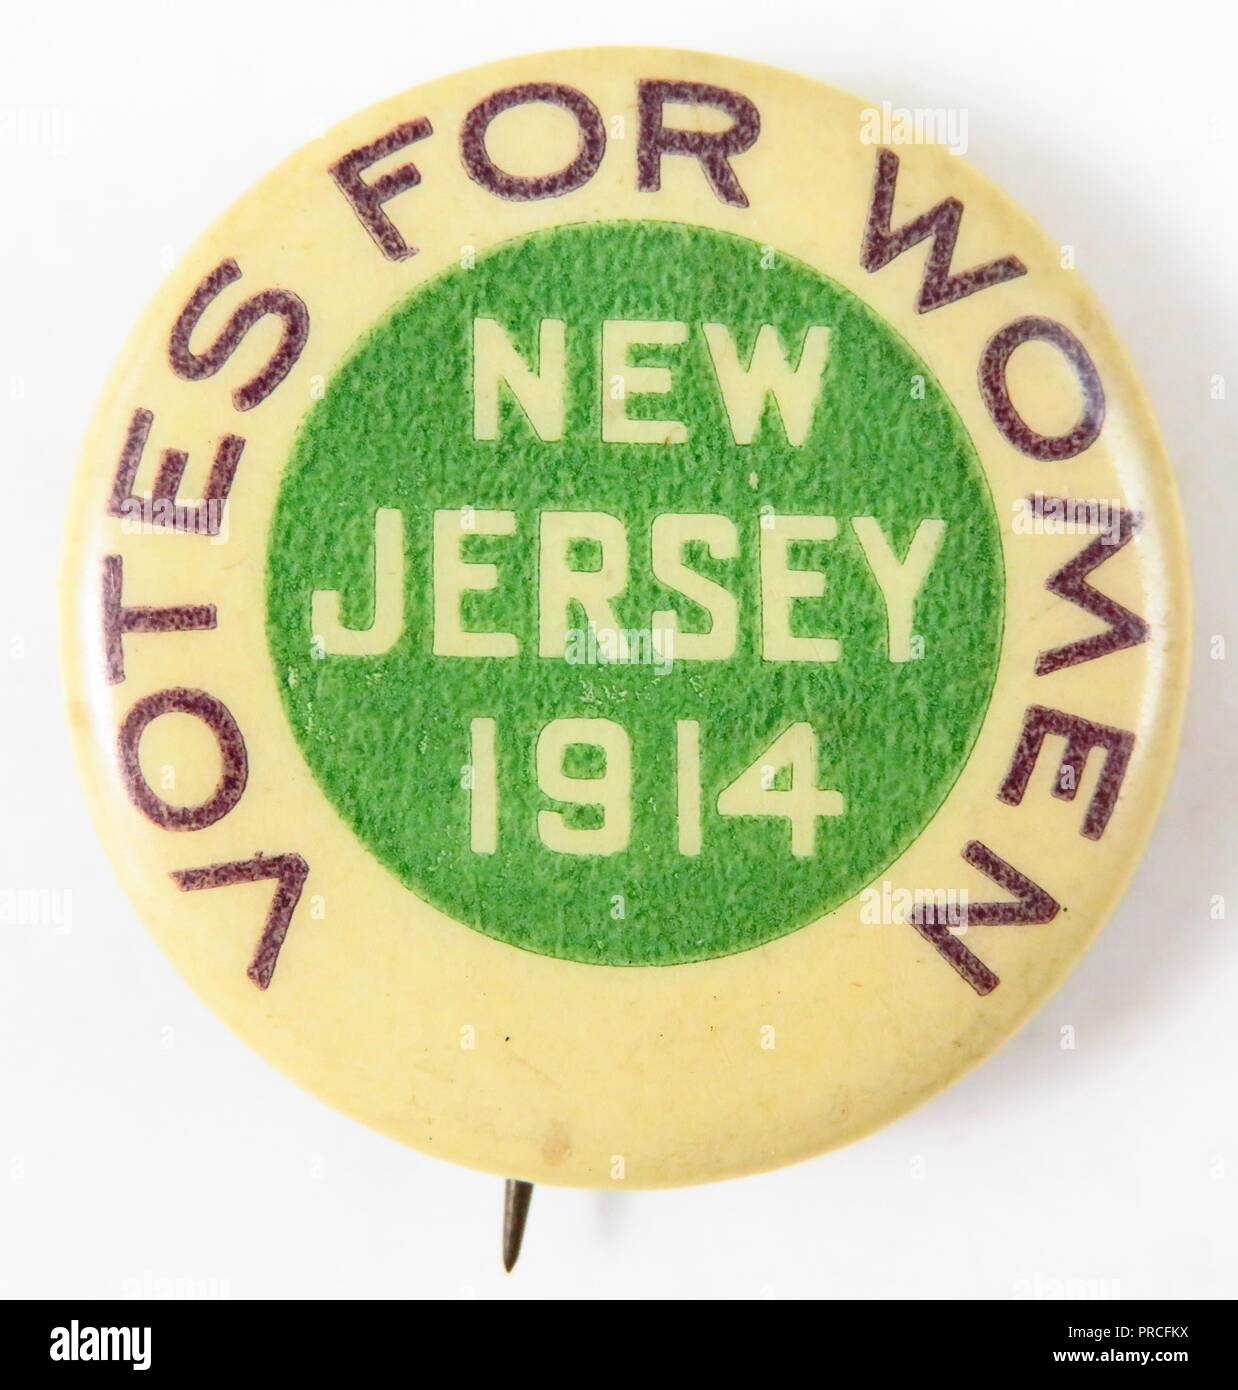 Purple, green, and white suffrage pin, with the text Votes for Women, New Jersey, 1914 manufactured for the American market, by the Women's Political Union (WPU) of New Jersey, 1914. Photography by Emilia van Beugen. () - Stock Image